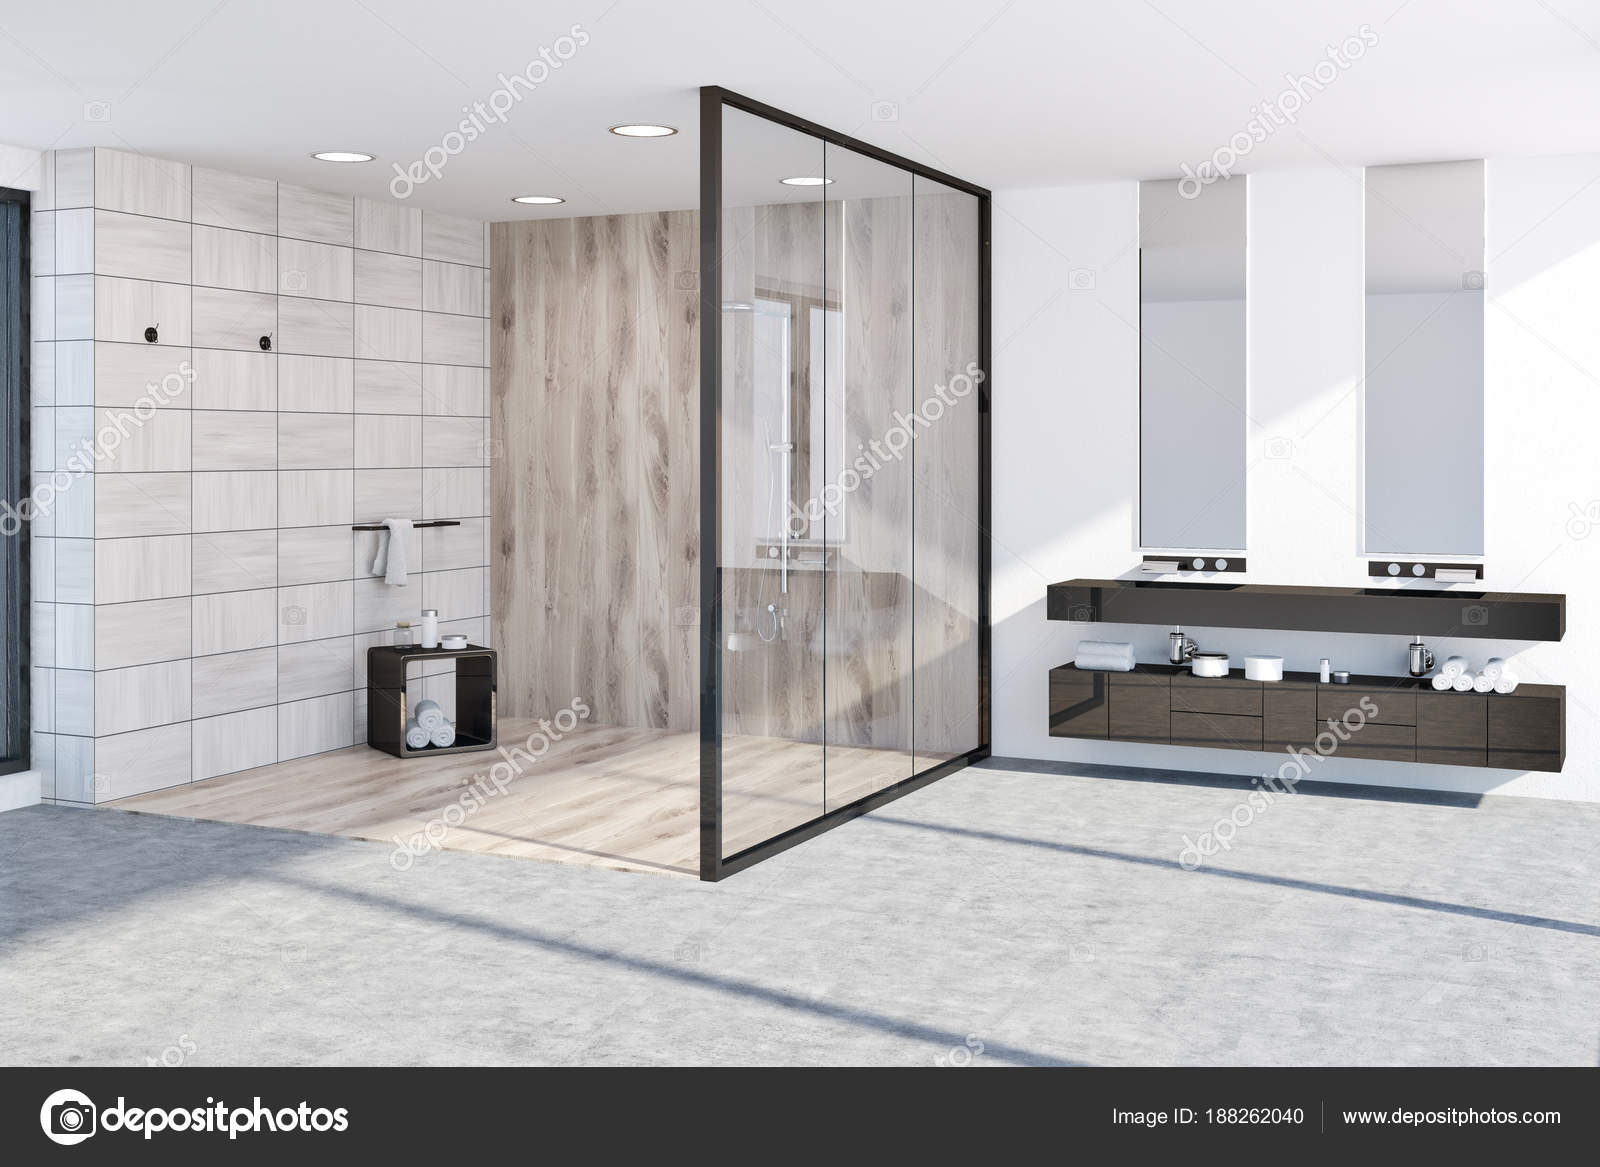 Wooden tiles bathroom corner — Stock Photo © denisismagilov #188262040